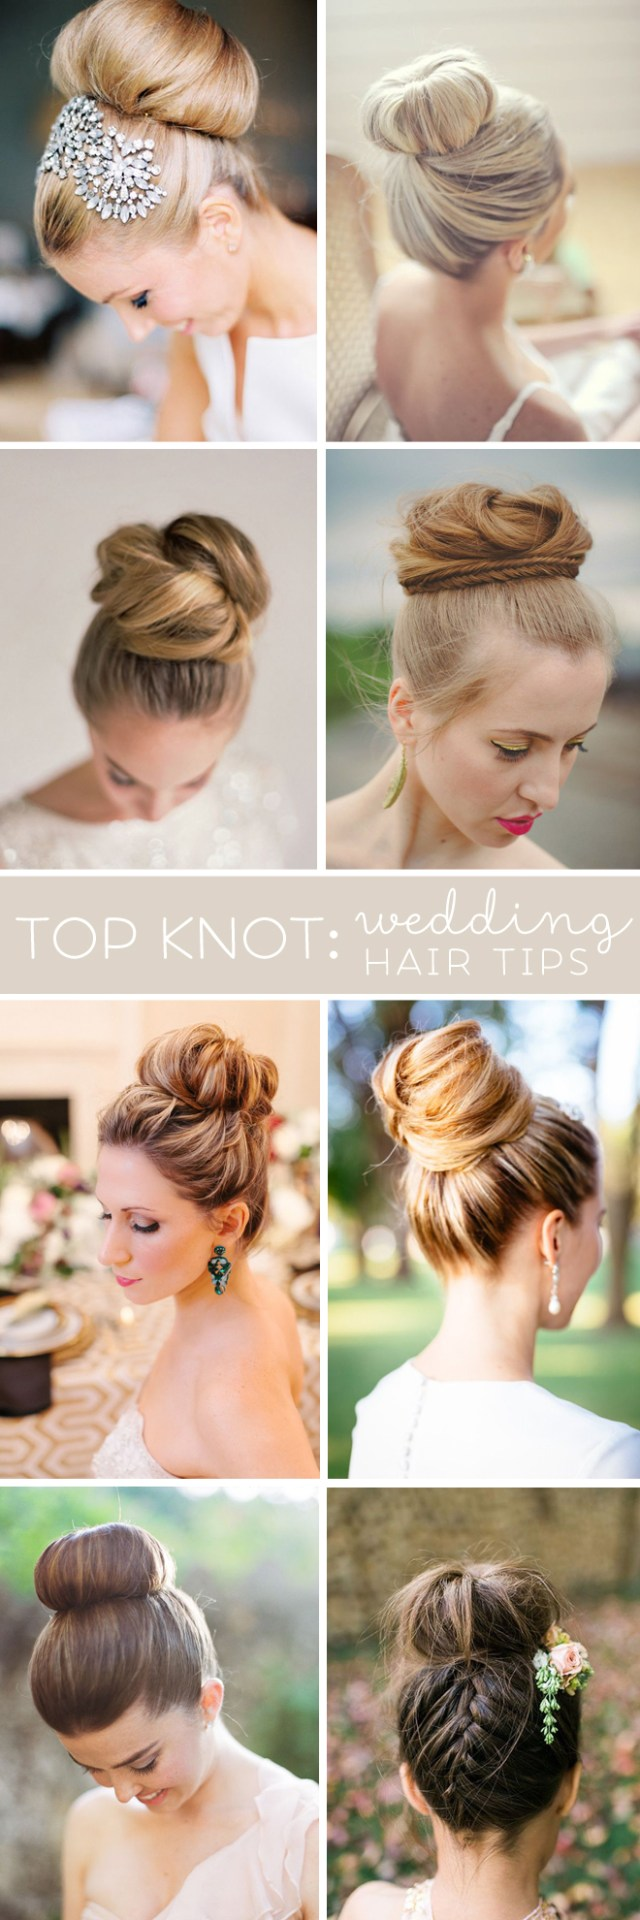 "awesome wedding hair tips for wearing a ""top knot"" bun"